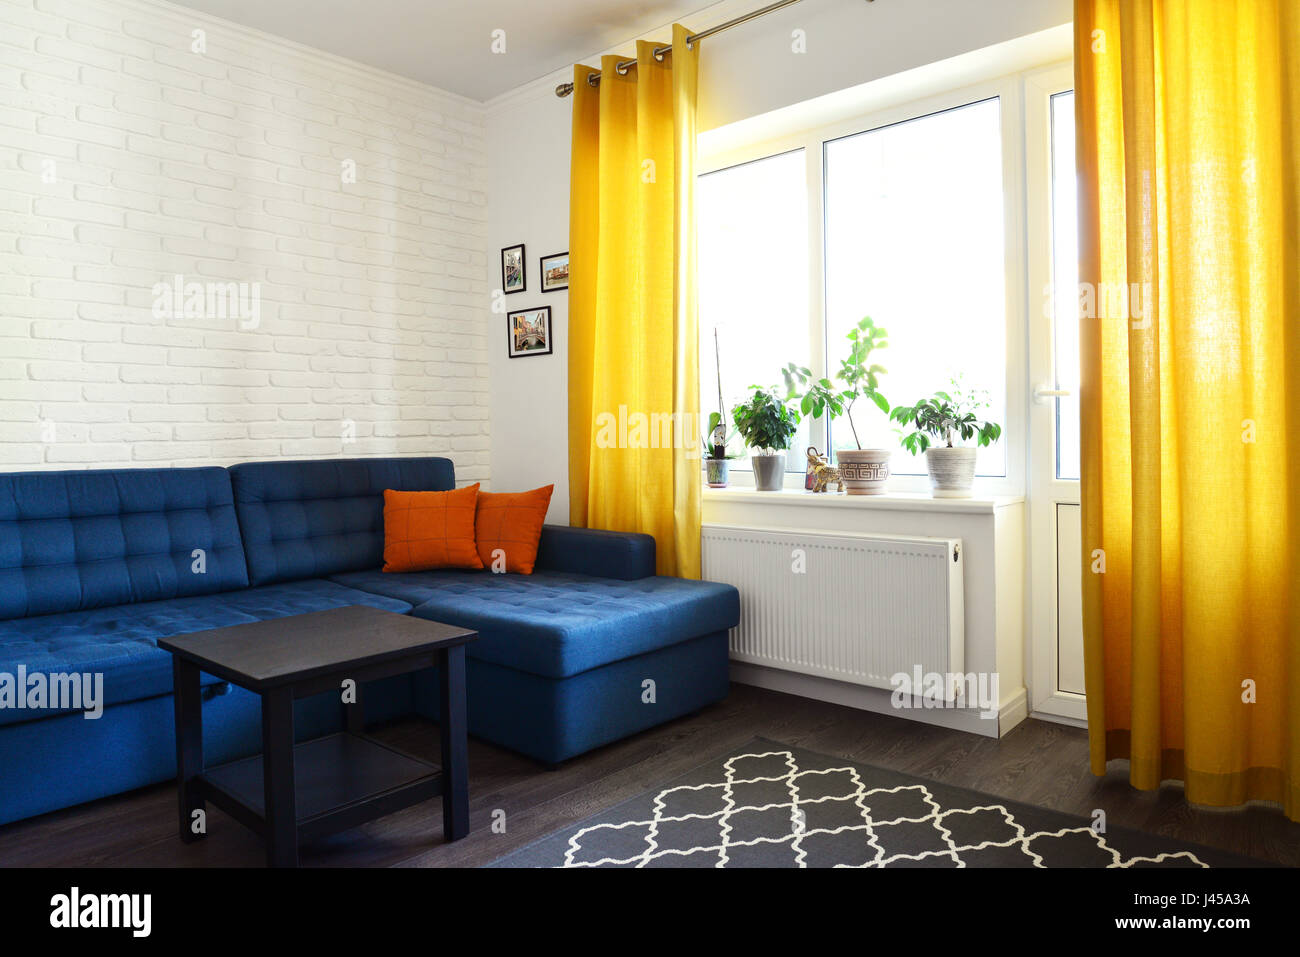 Clean Family Room With Blue Couch, White Brick Wall And Yellow Curtains.  Design Interior Concept.